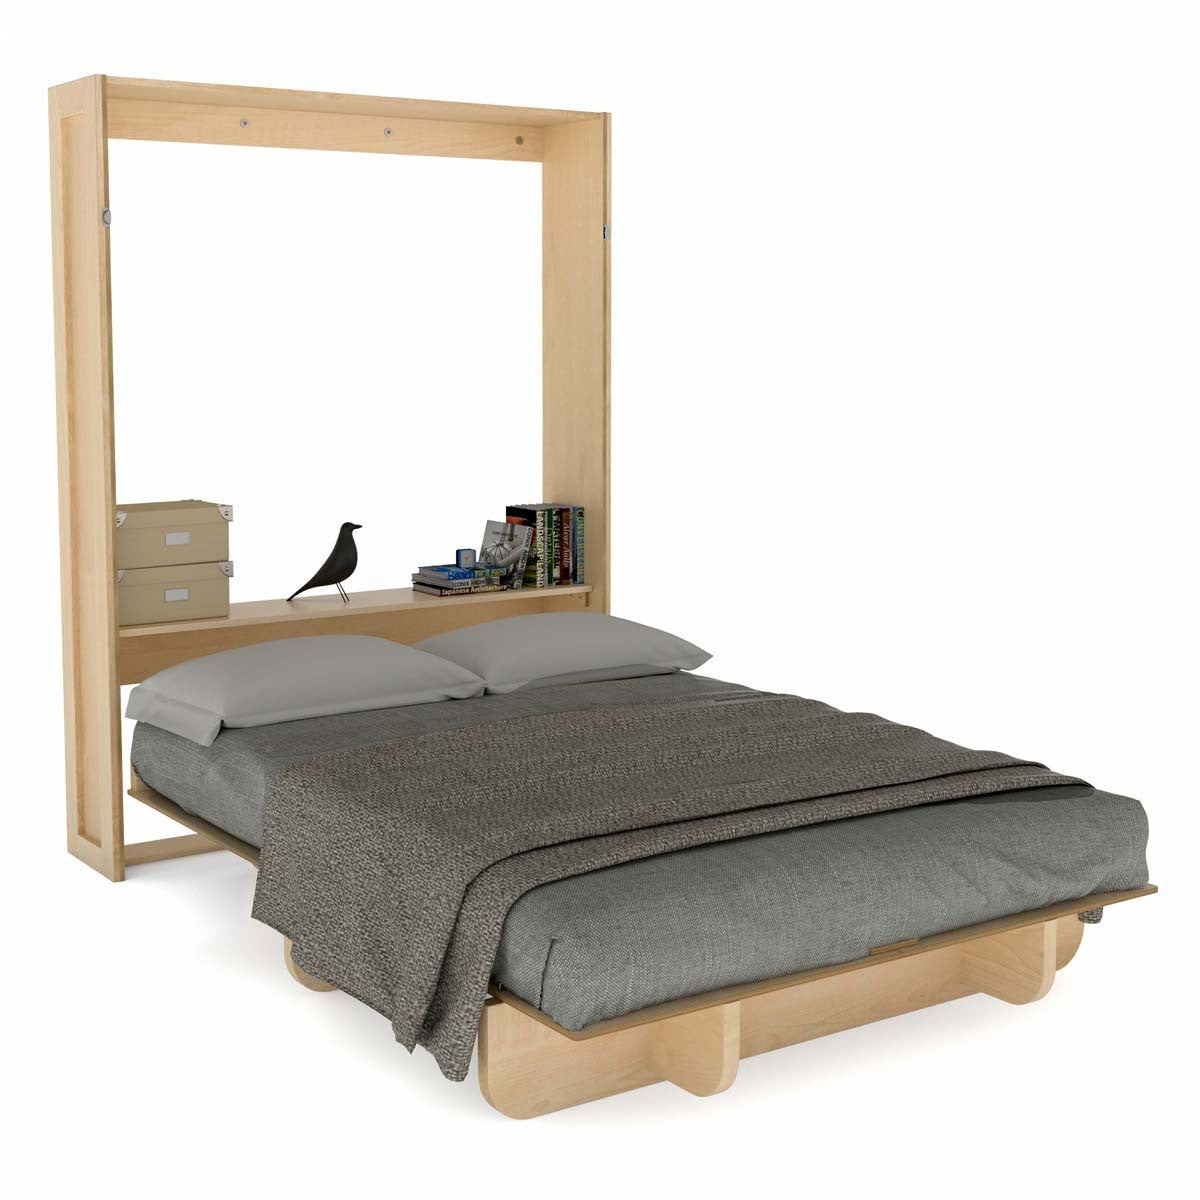 Queen Size Ready To Build Lori Wall Bed Wood Kit Lori Wall Beds